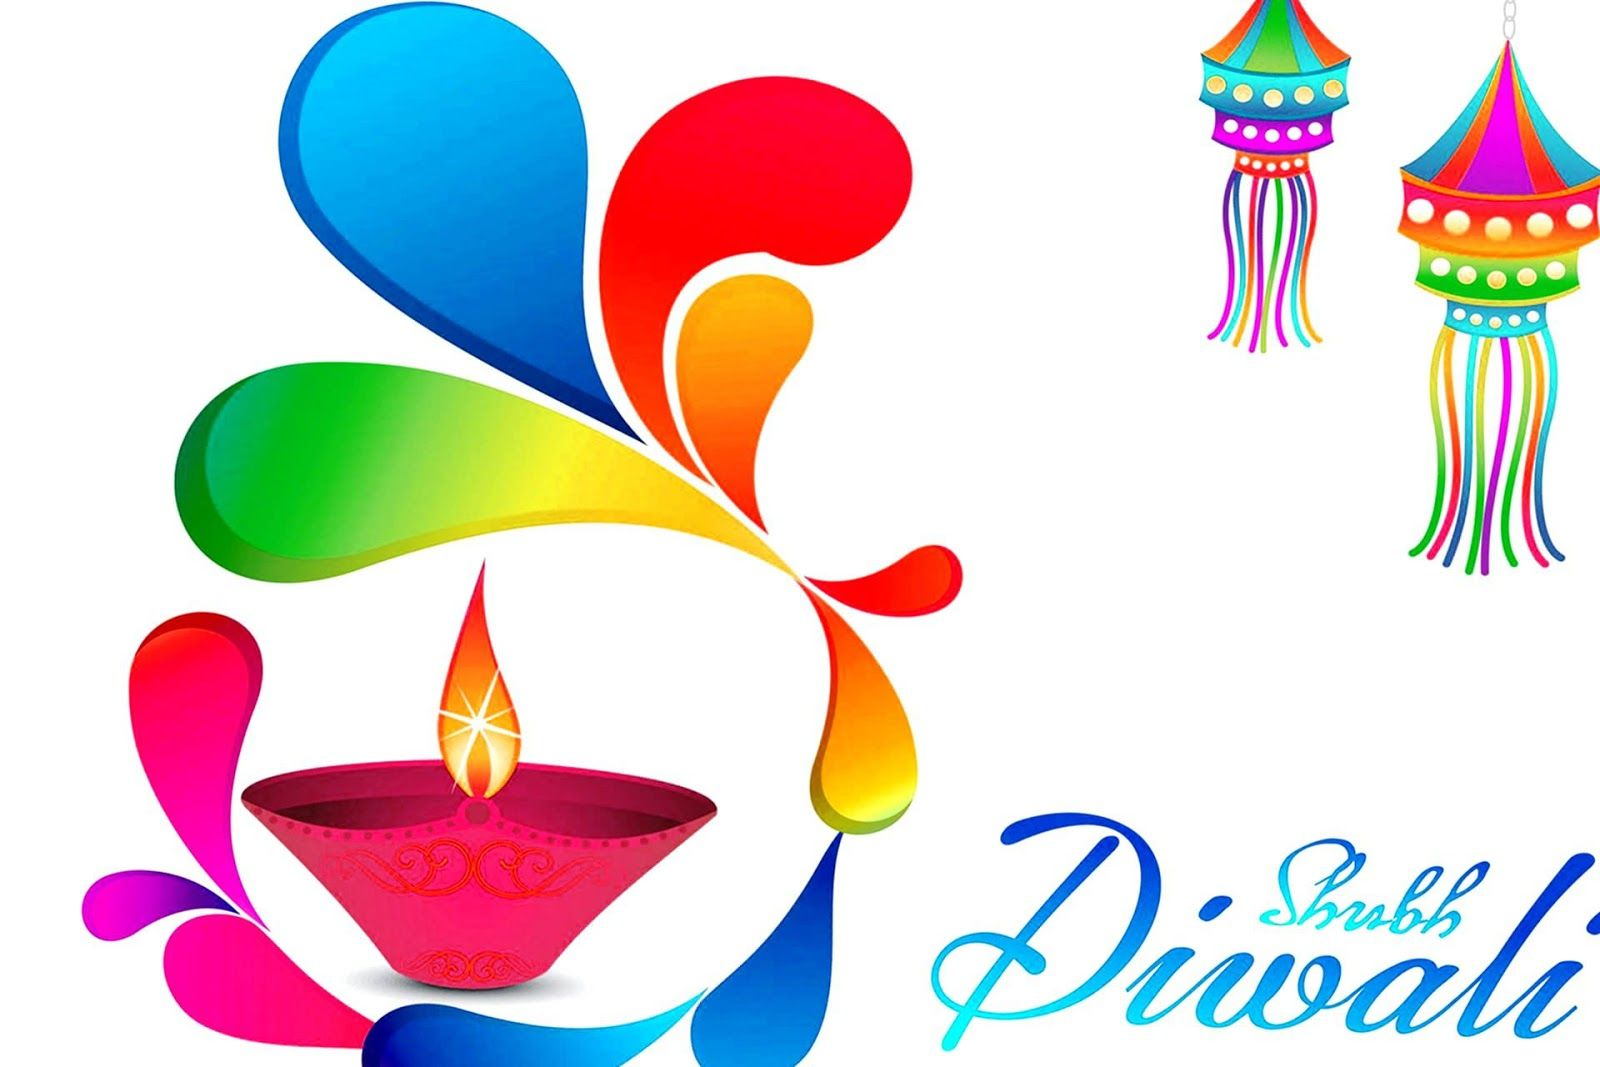 2016 clipart diwali, 2016 diwali Transparent FREE for.